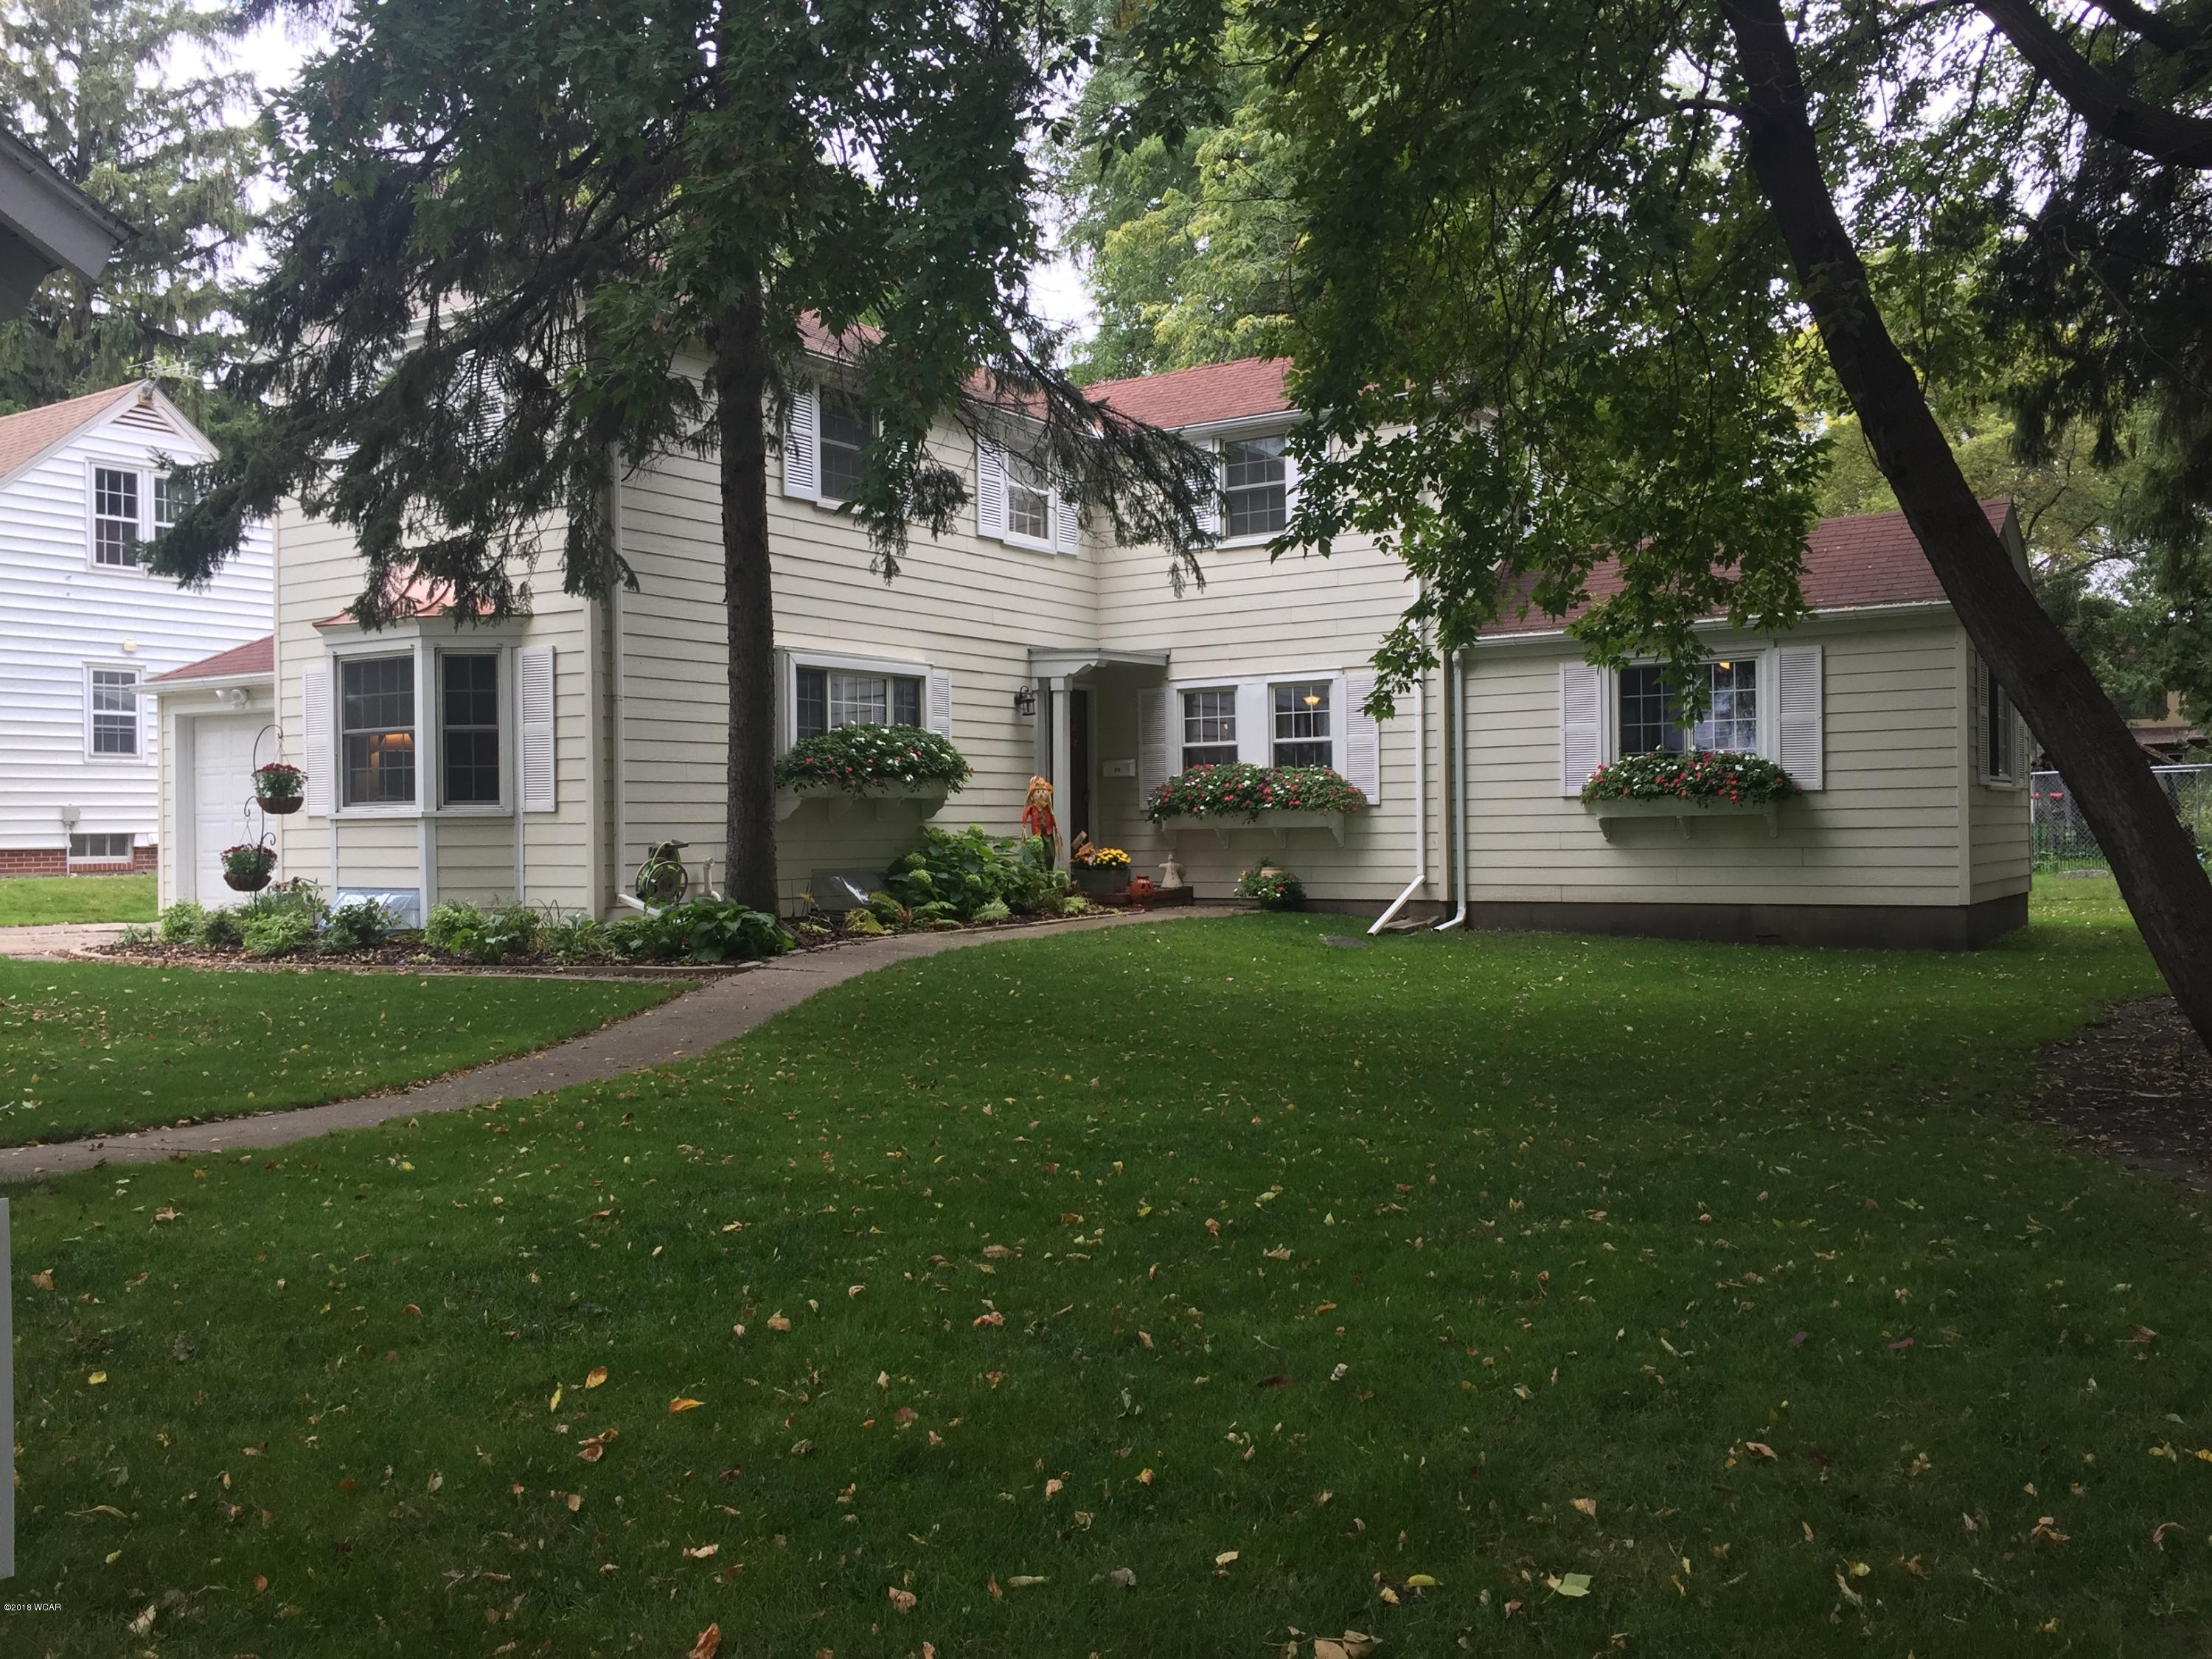 918 Trott Avenue,Willmar,3 Bedrooms Bedrooms,3 BathroomsBathrooms,Single Family,Trott Avenue,6032462